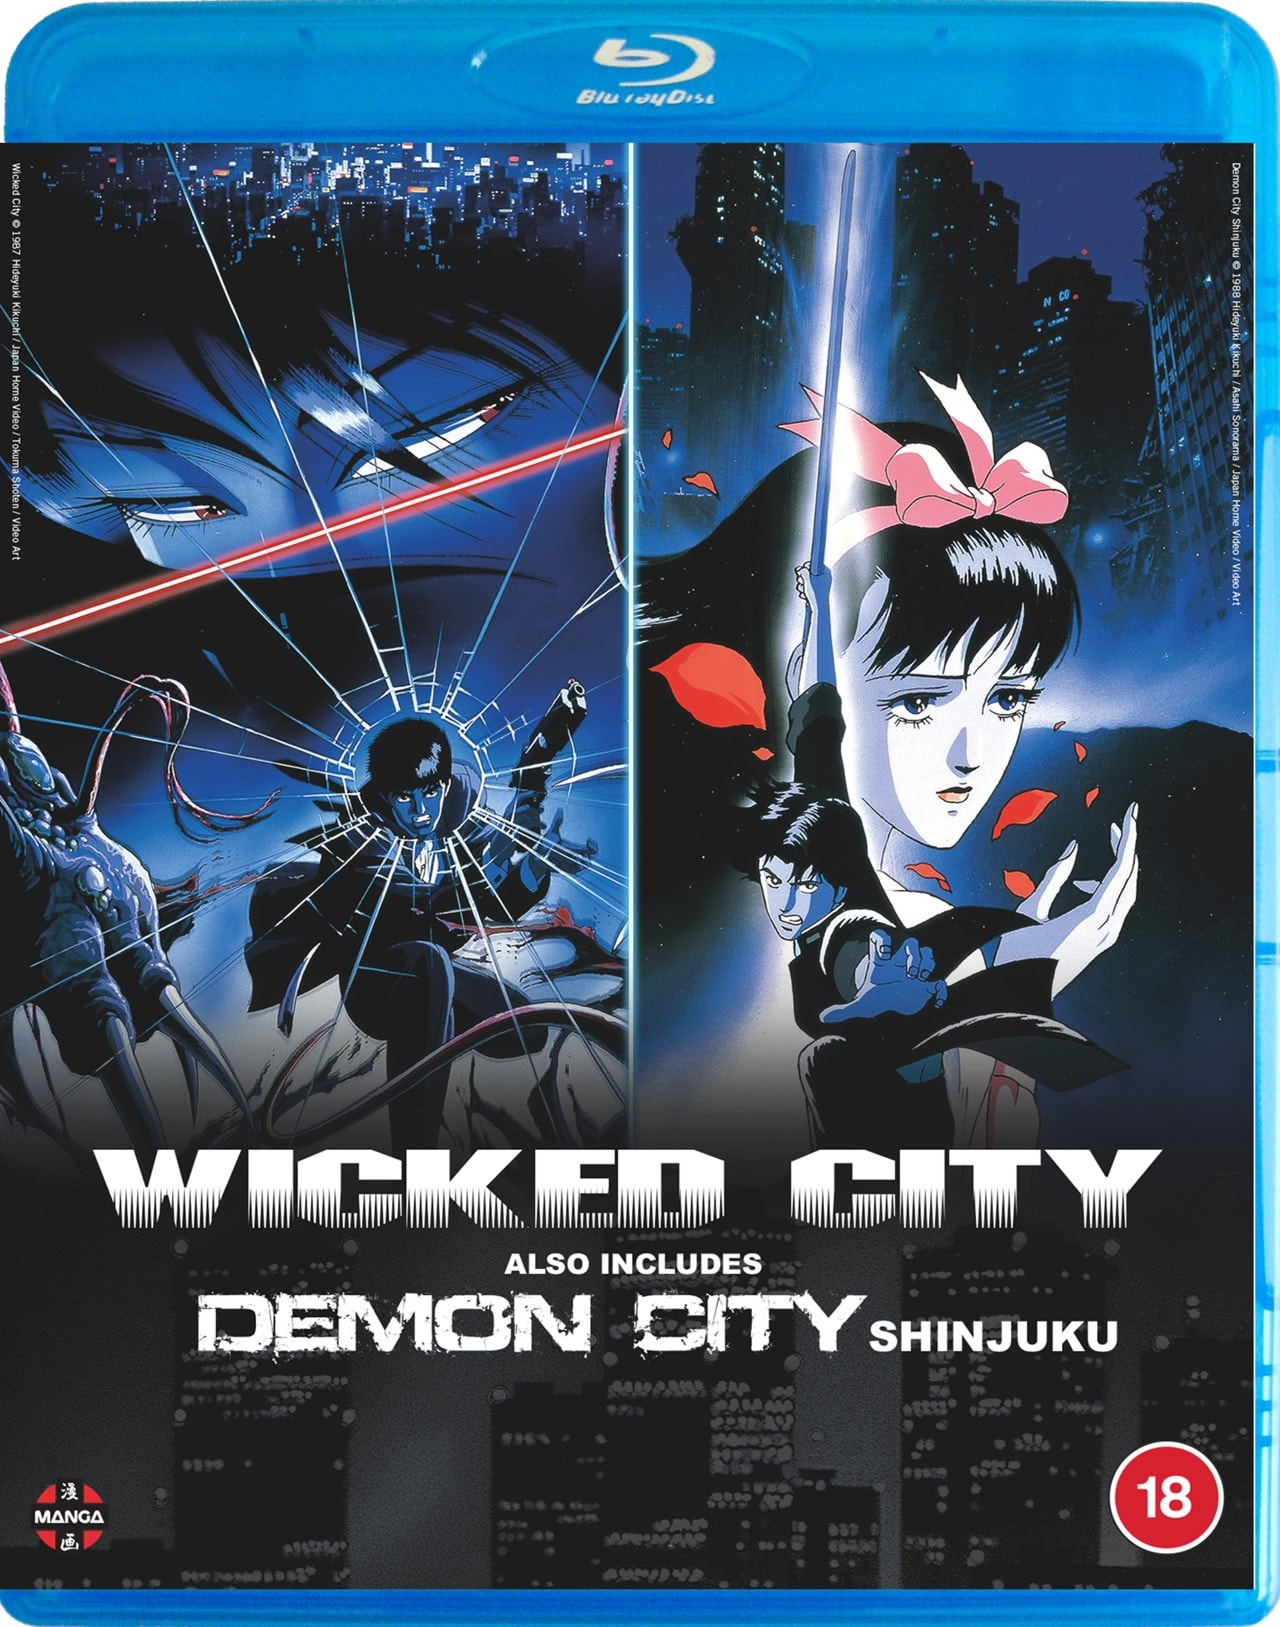 Wicked City/Demon City Shinjuku - 1